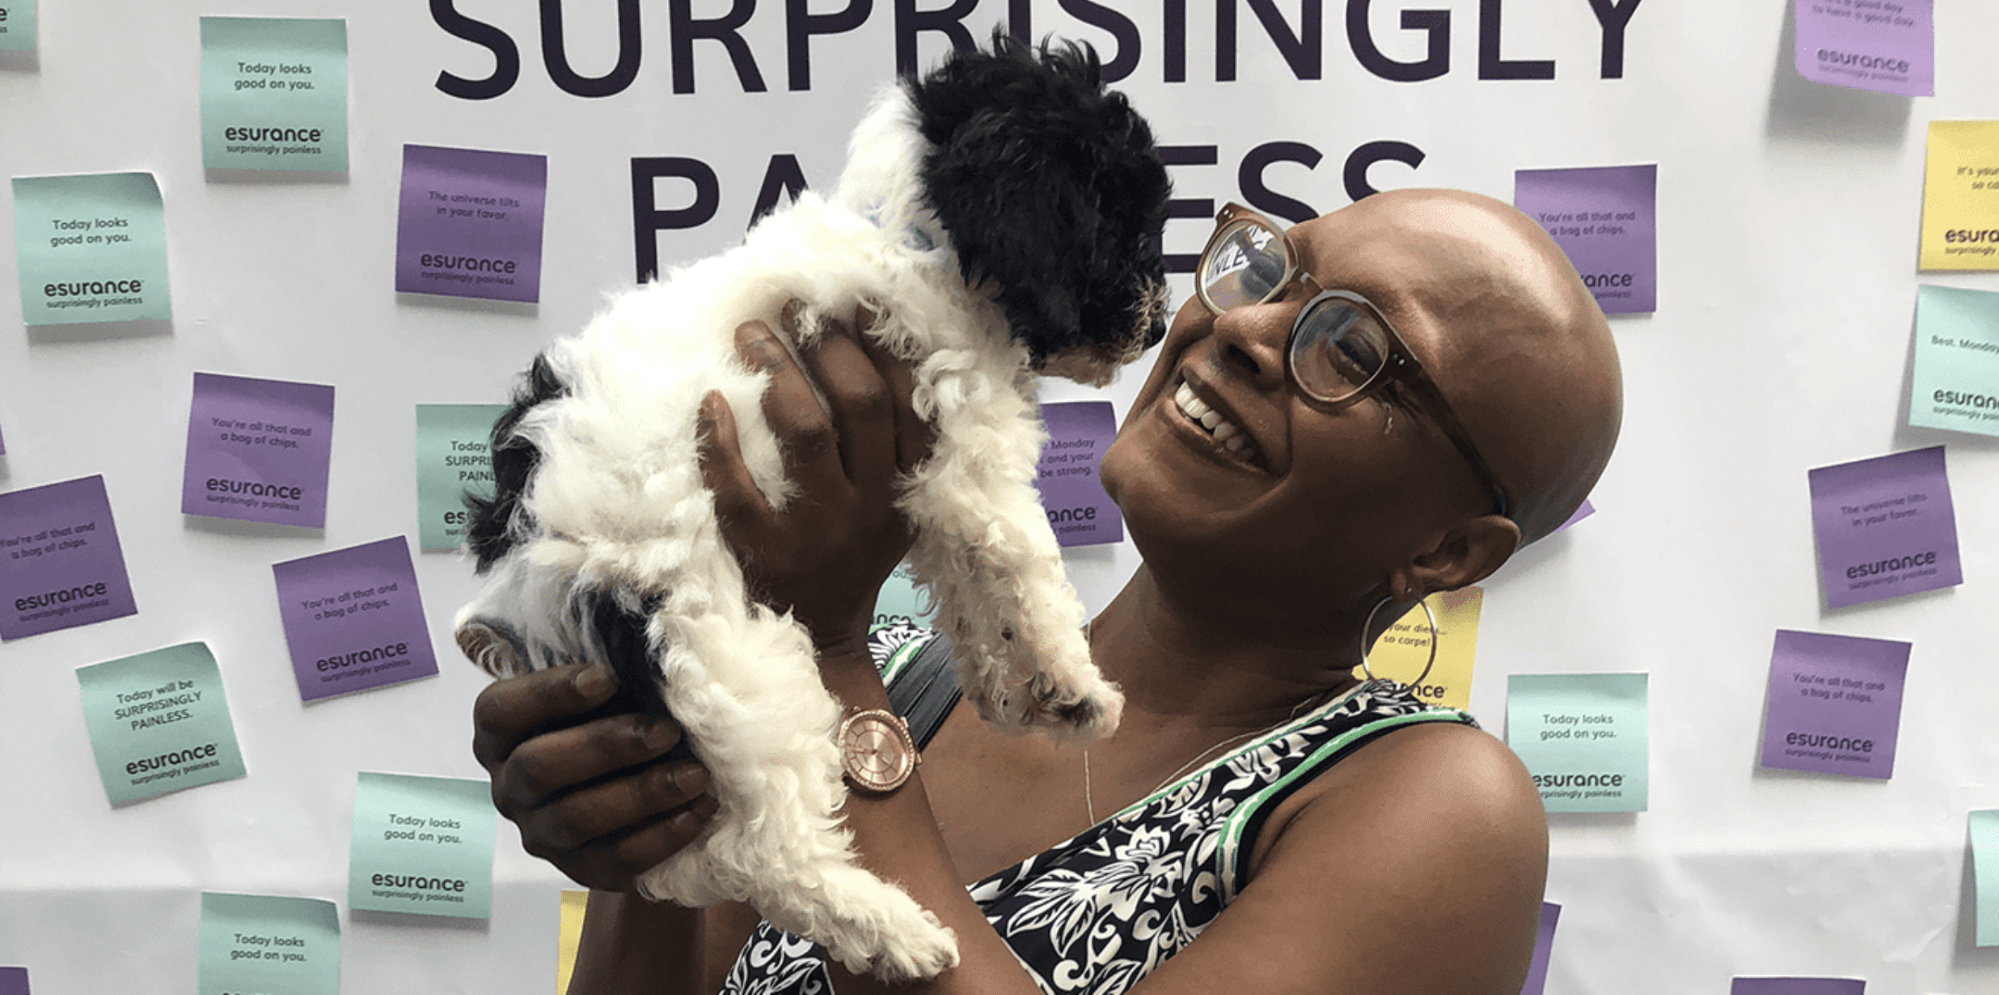 Puppy Play Pen - Corporate Event Entertainment Ideas